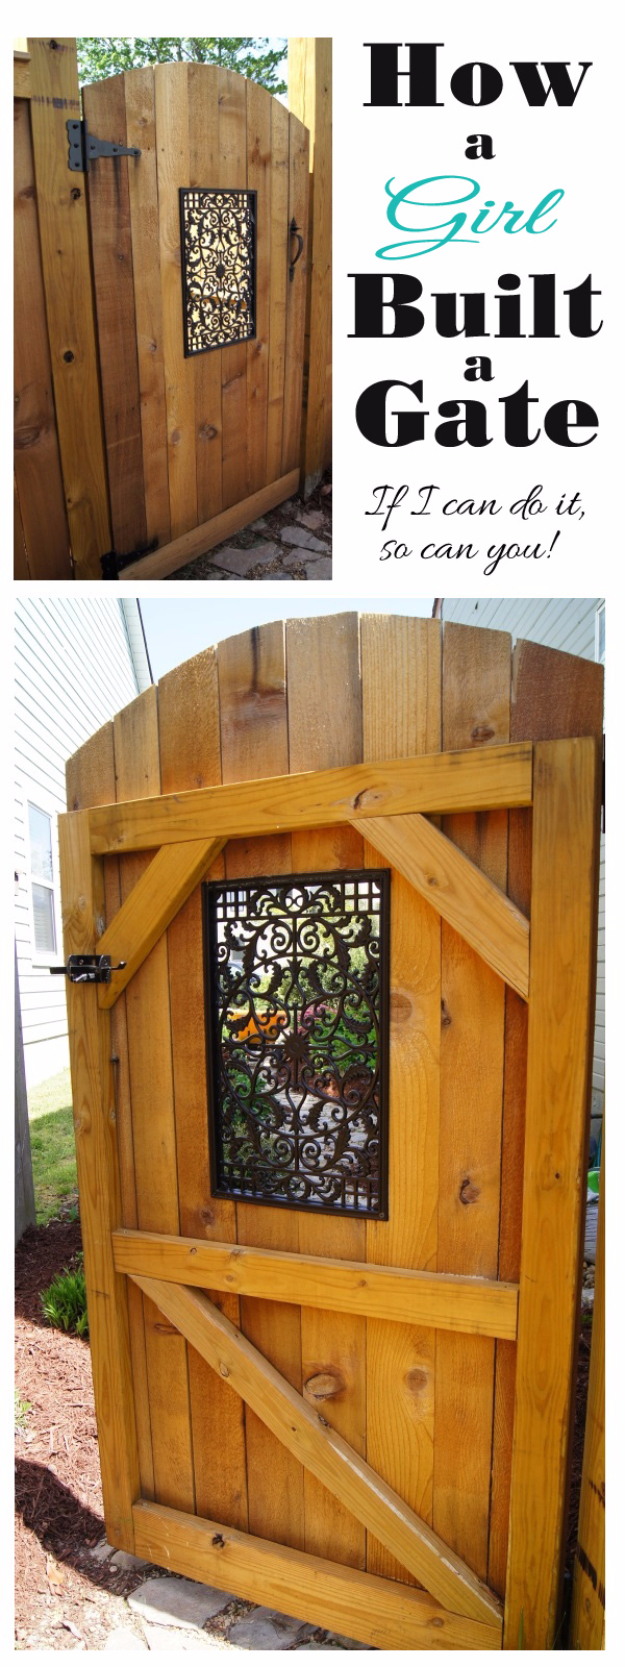 DIY Fences and Gates - Easy DIY Gate - How To Make Easy Fence and Gate Project for Backyard and Home - Step by Step Tutorial and Ideas for Painting, Updating and Making Fences and DIY Gate - Cool Outdoors and Yard Projects